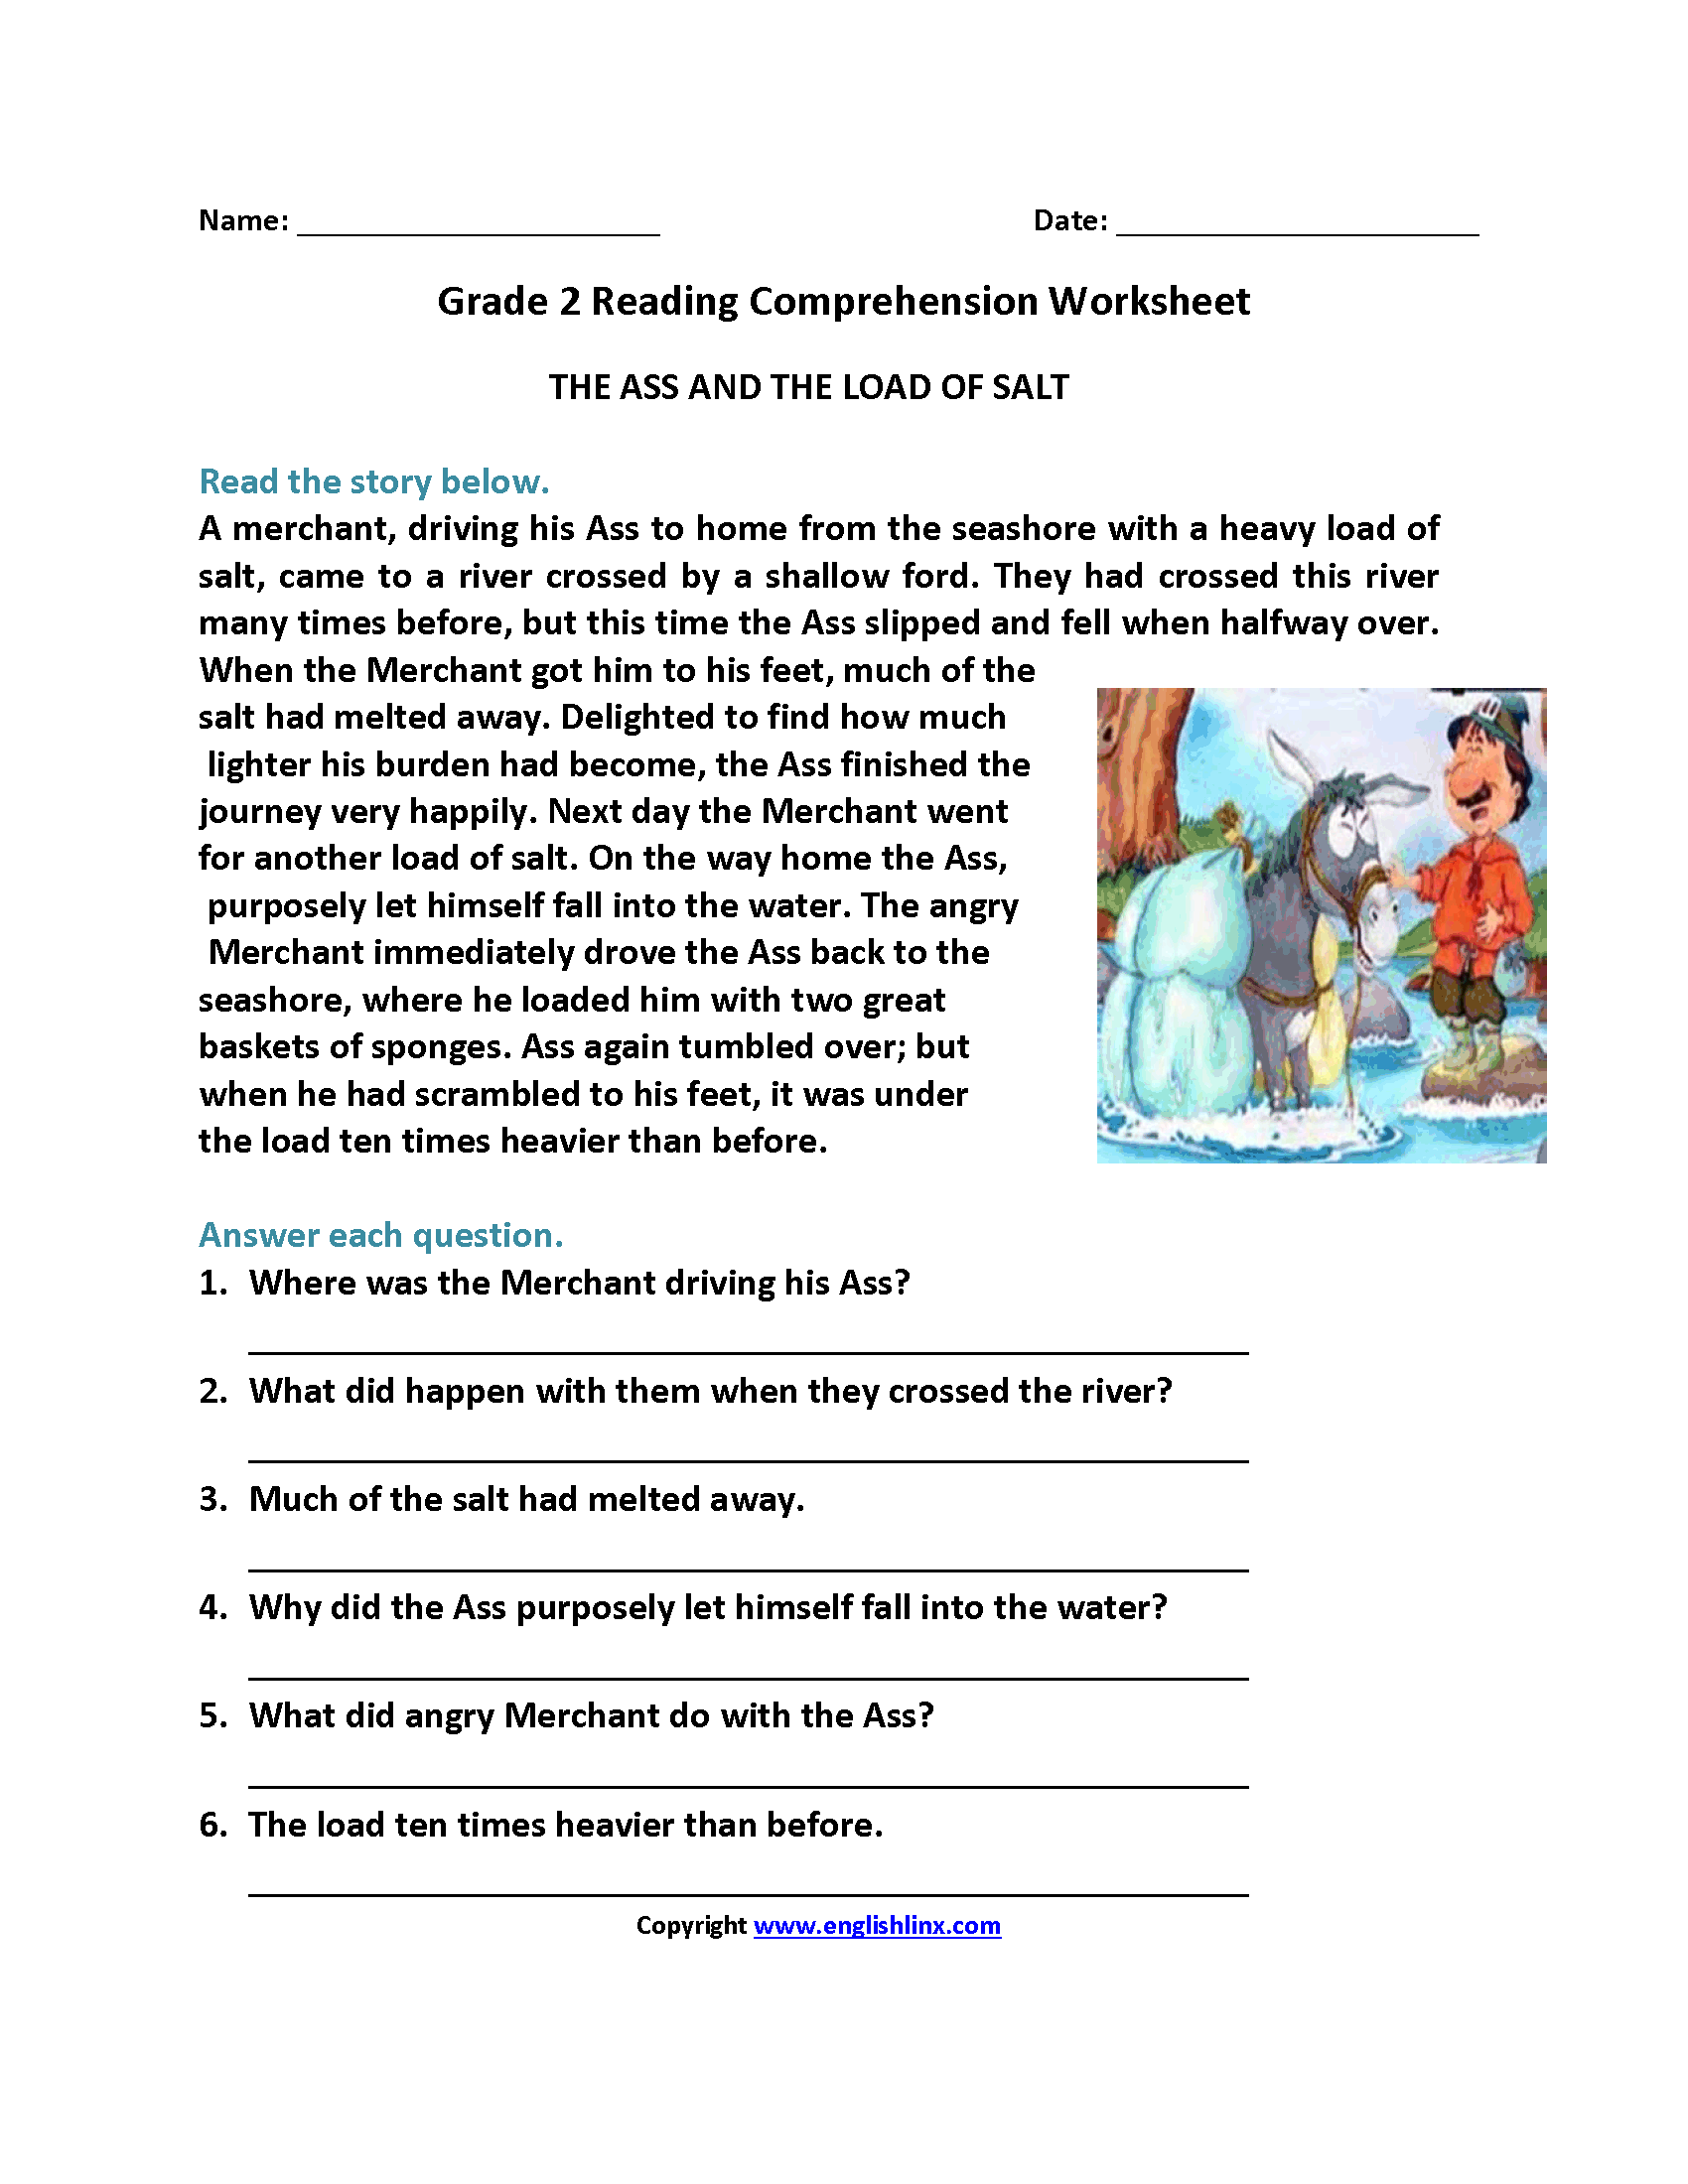 Worksheets Grade 2 Reading Comprehension Worksheets reading worksheets second grade worksheets